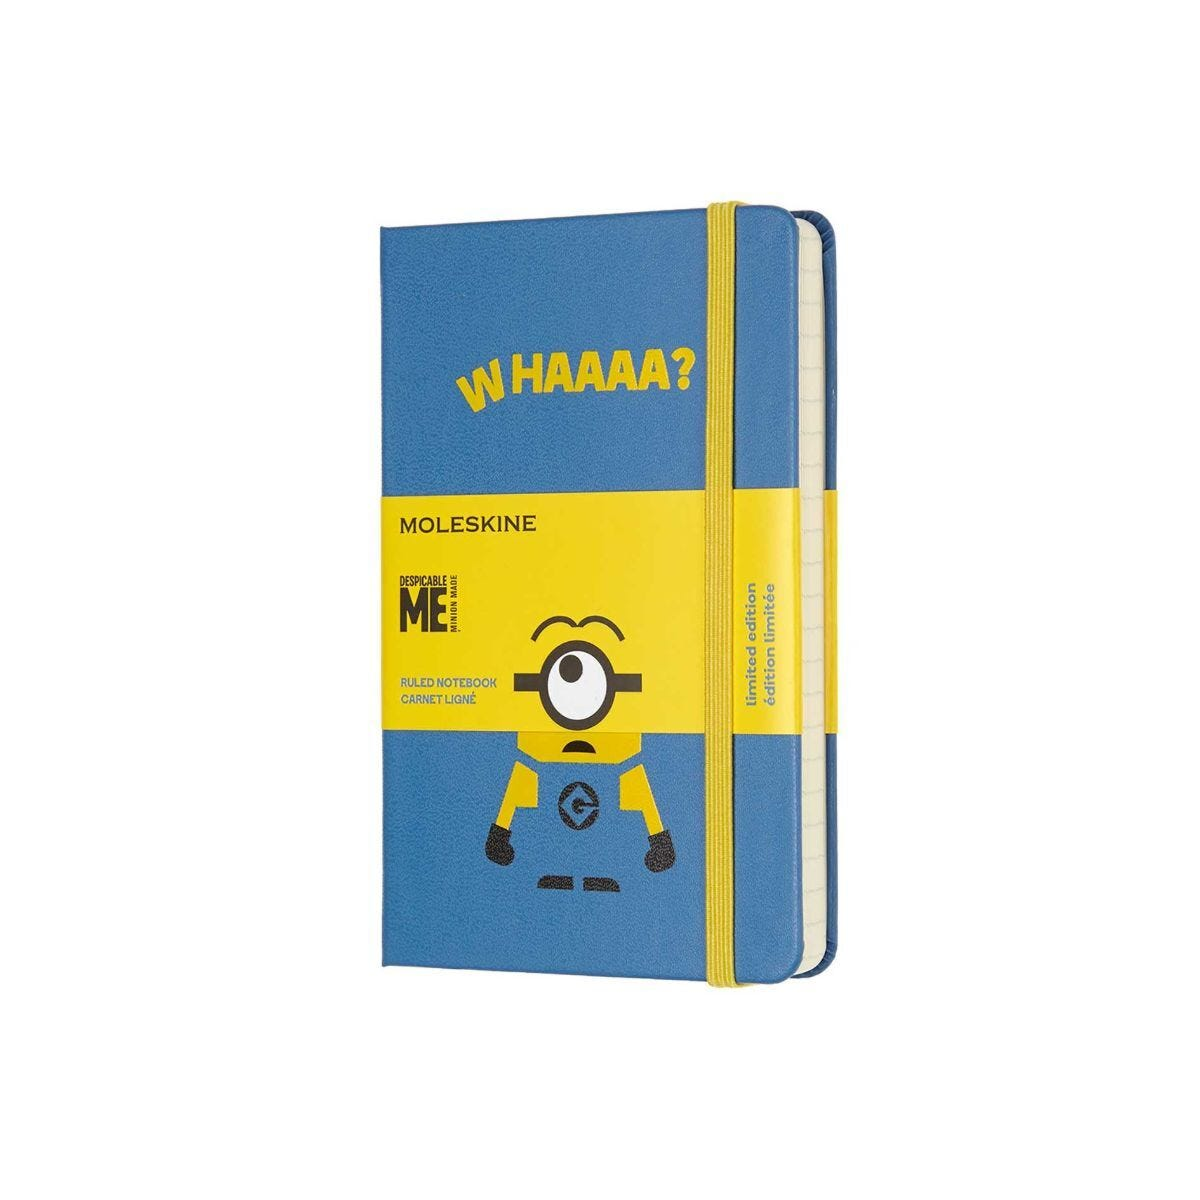 Moleskine Special Edition Pocket Ruled Notebook Minions